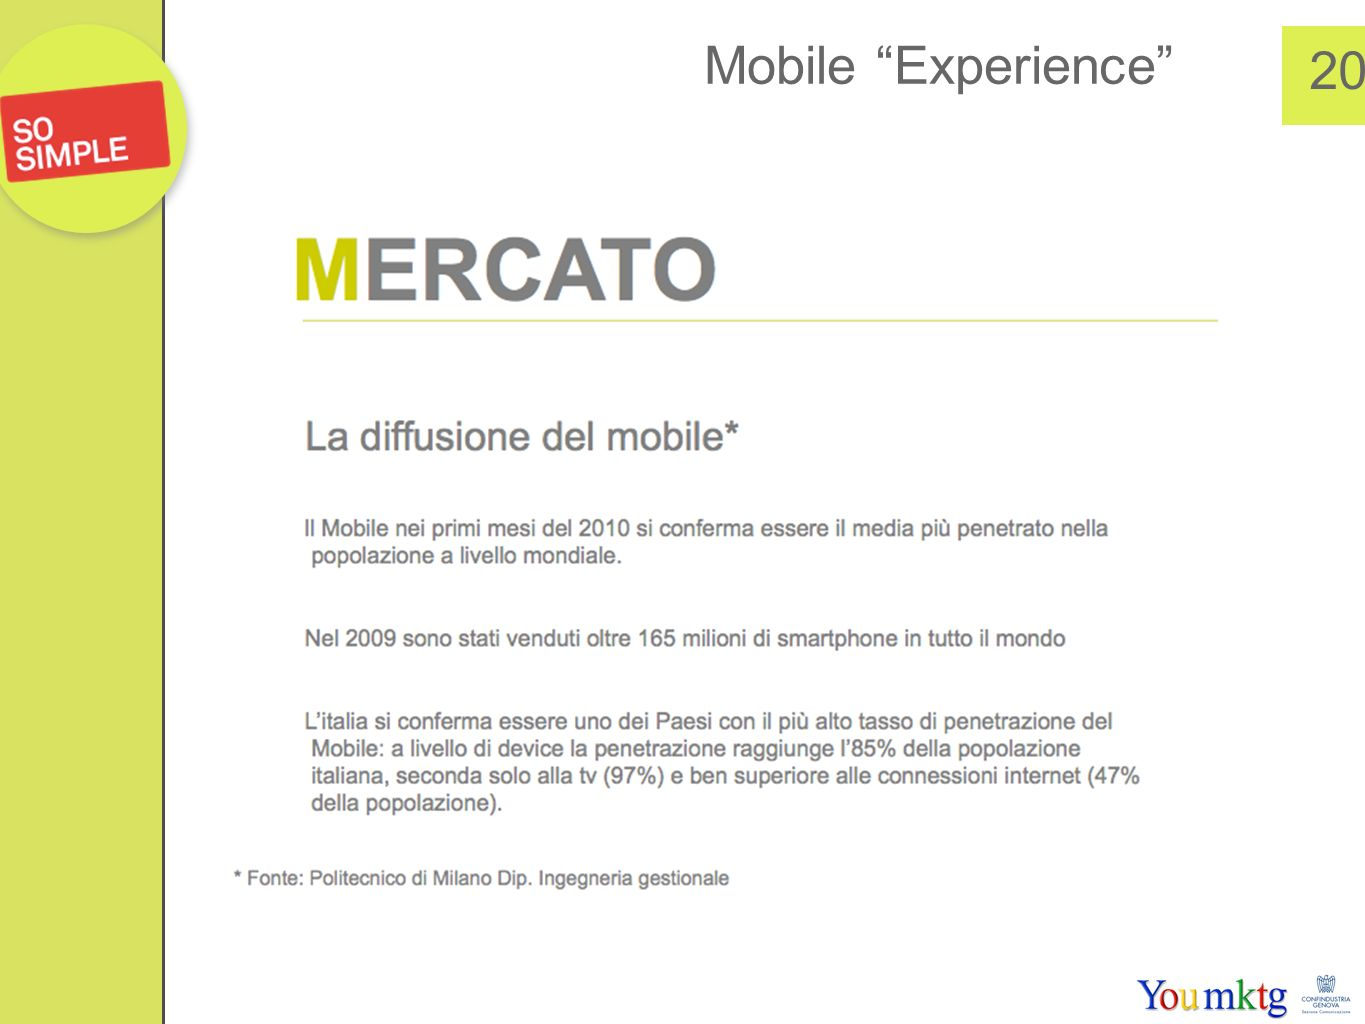 Mobile Experience 20